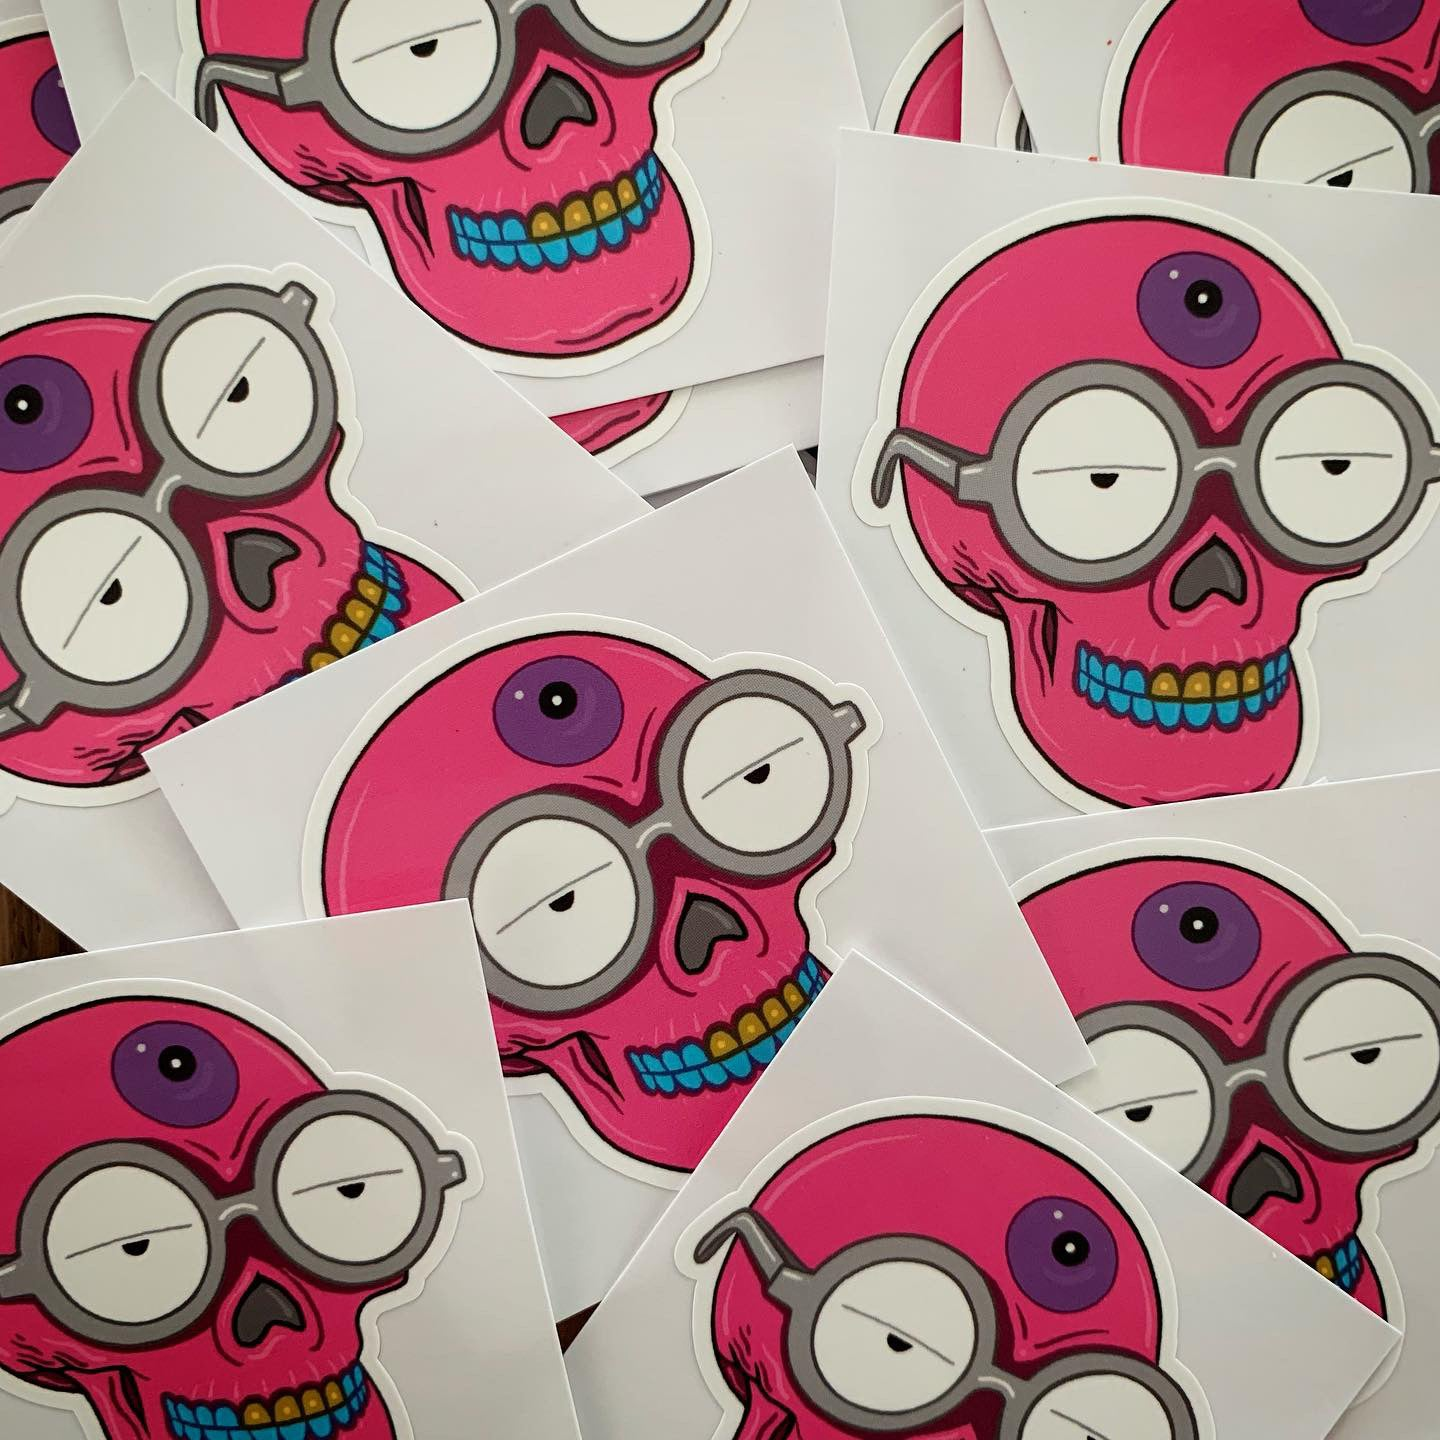 Image of Herb Mentality stickers